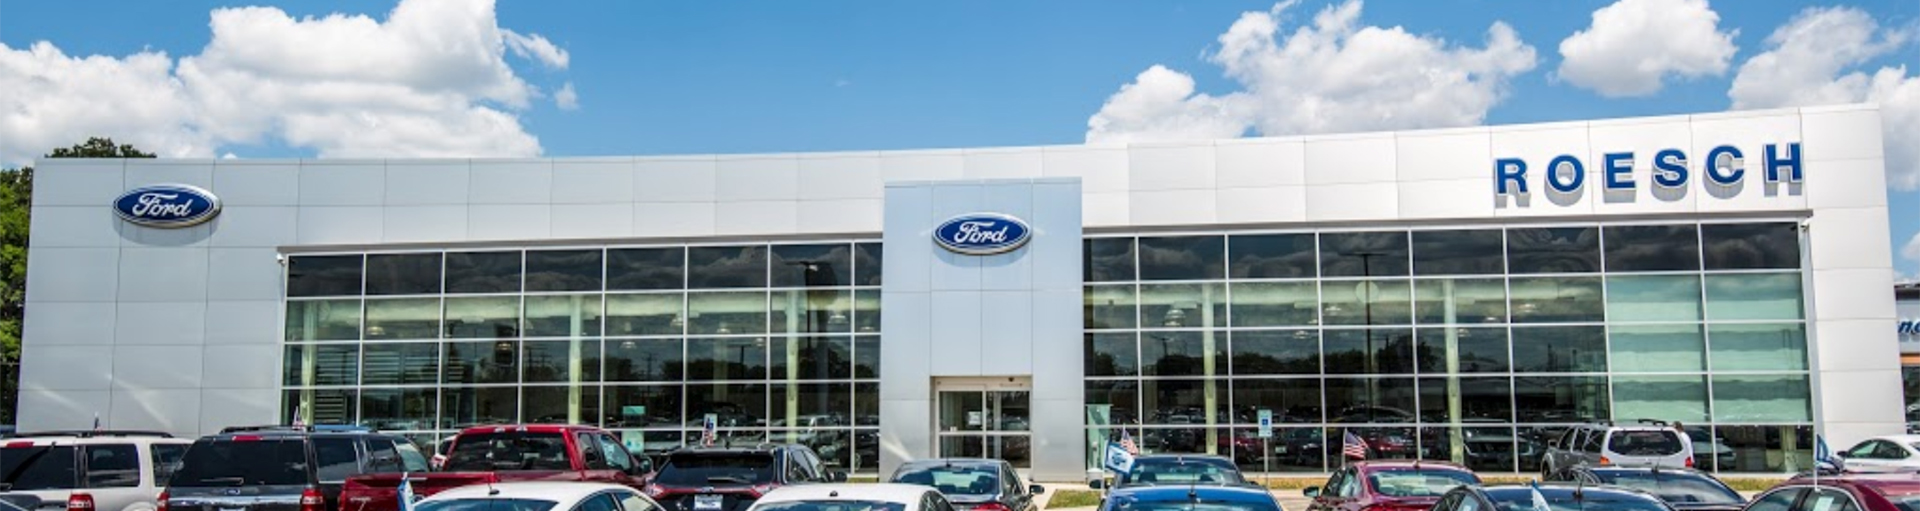 Roesch Ford Service & Parts Specials